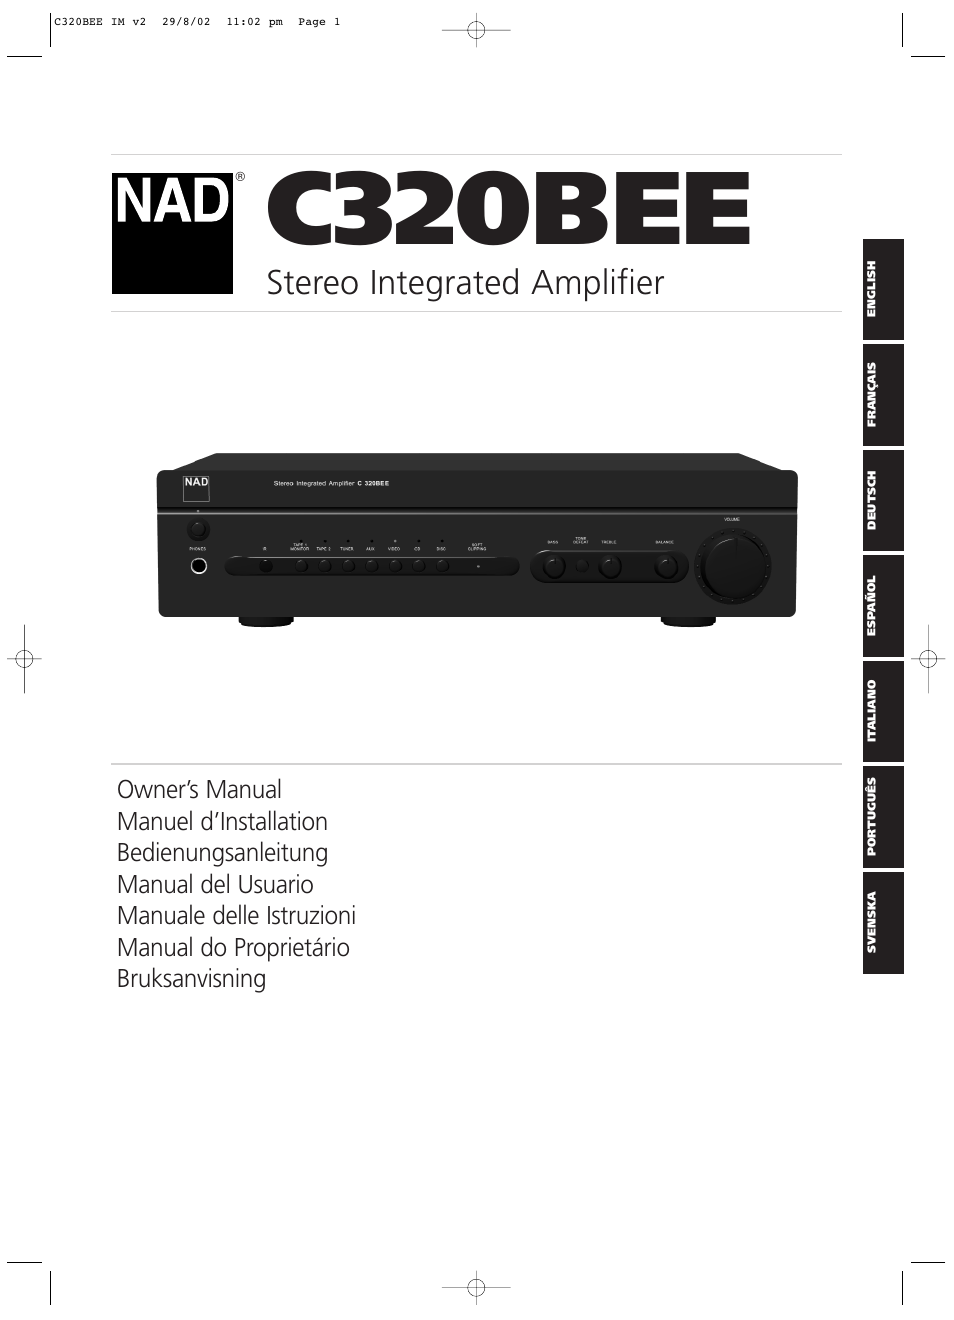 NAD C320BEE User Manual | 46 pages